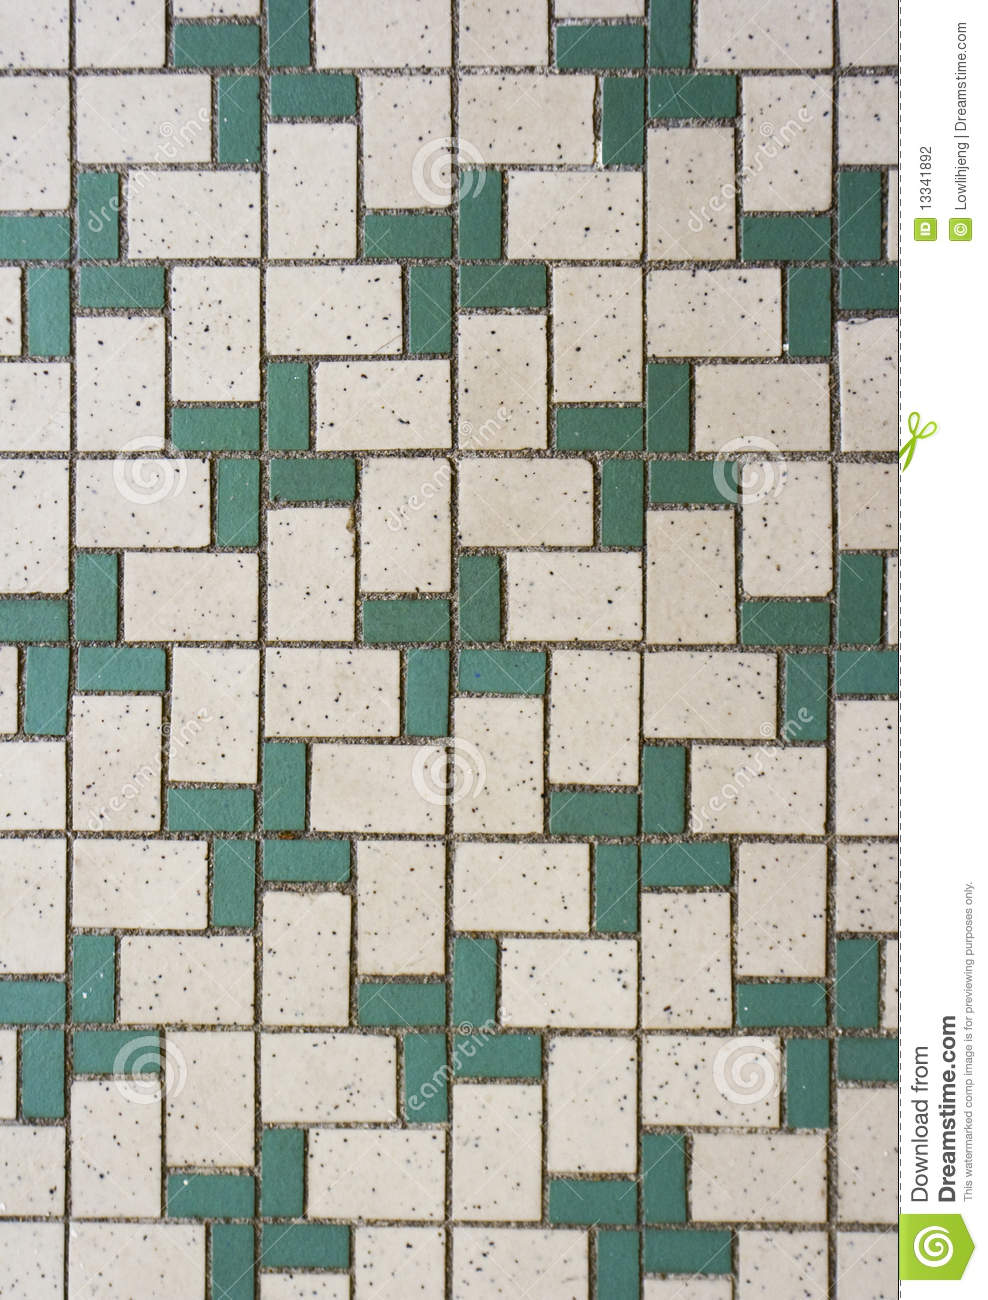 Green And White Mosaic Tiles Stock Photography Image